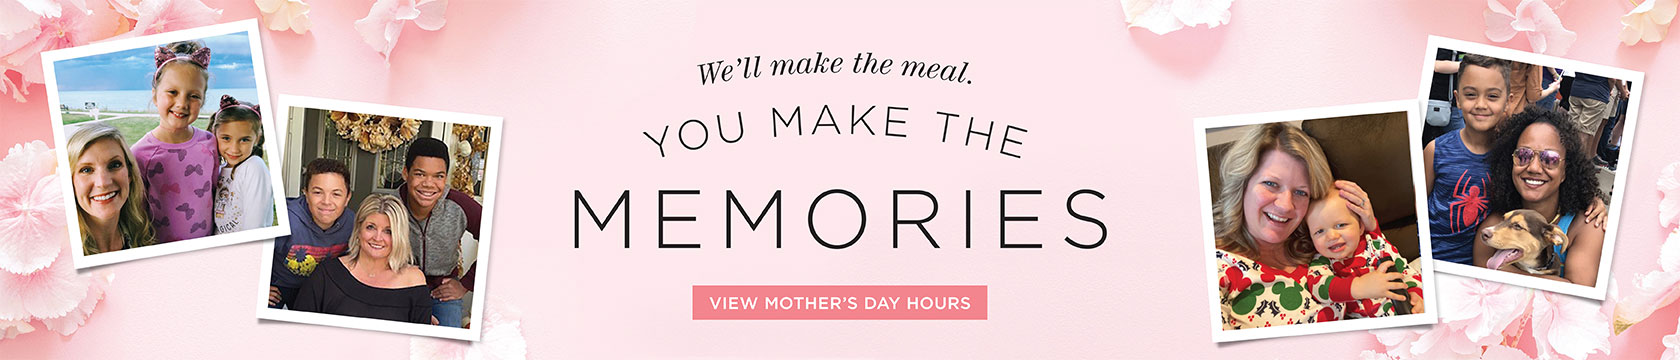 We'll make the meal. You make the memories. View Mother's Day Hours